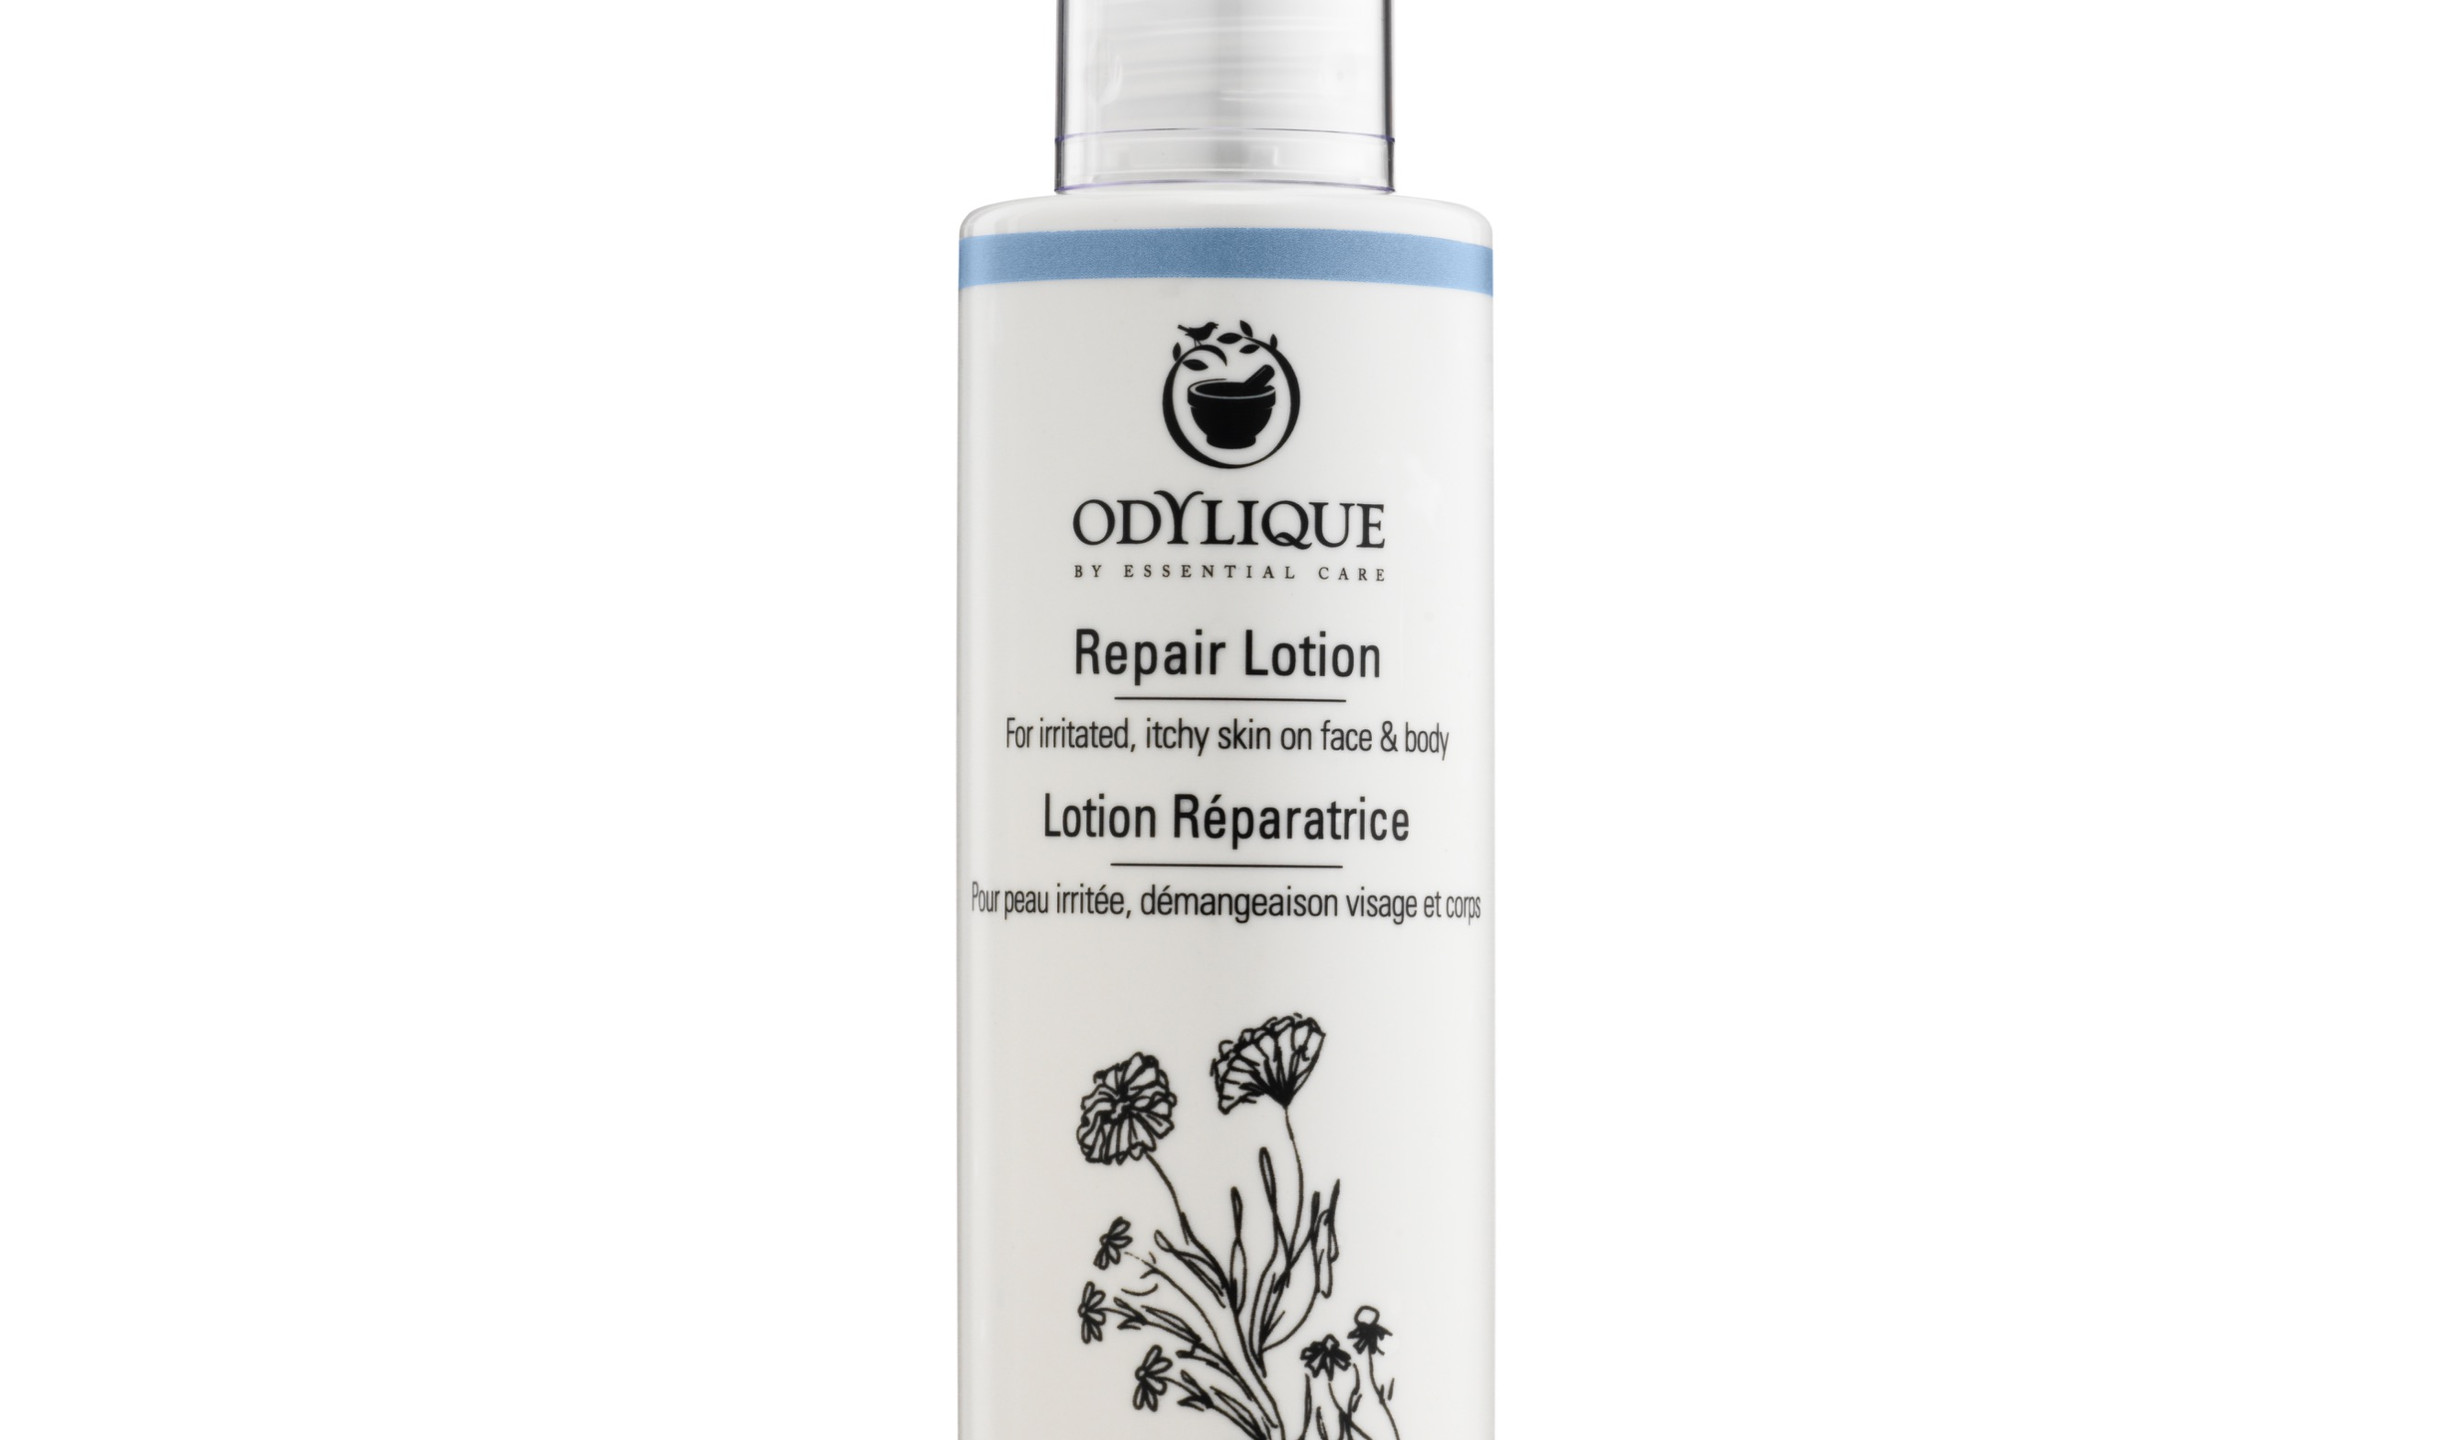 Odylique Repair Lotion for irritated, itchy skin on the face and body containing Calendula